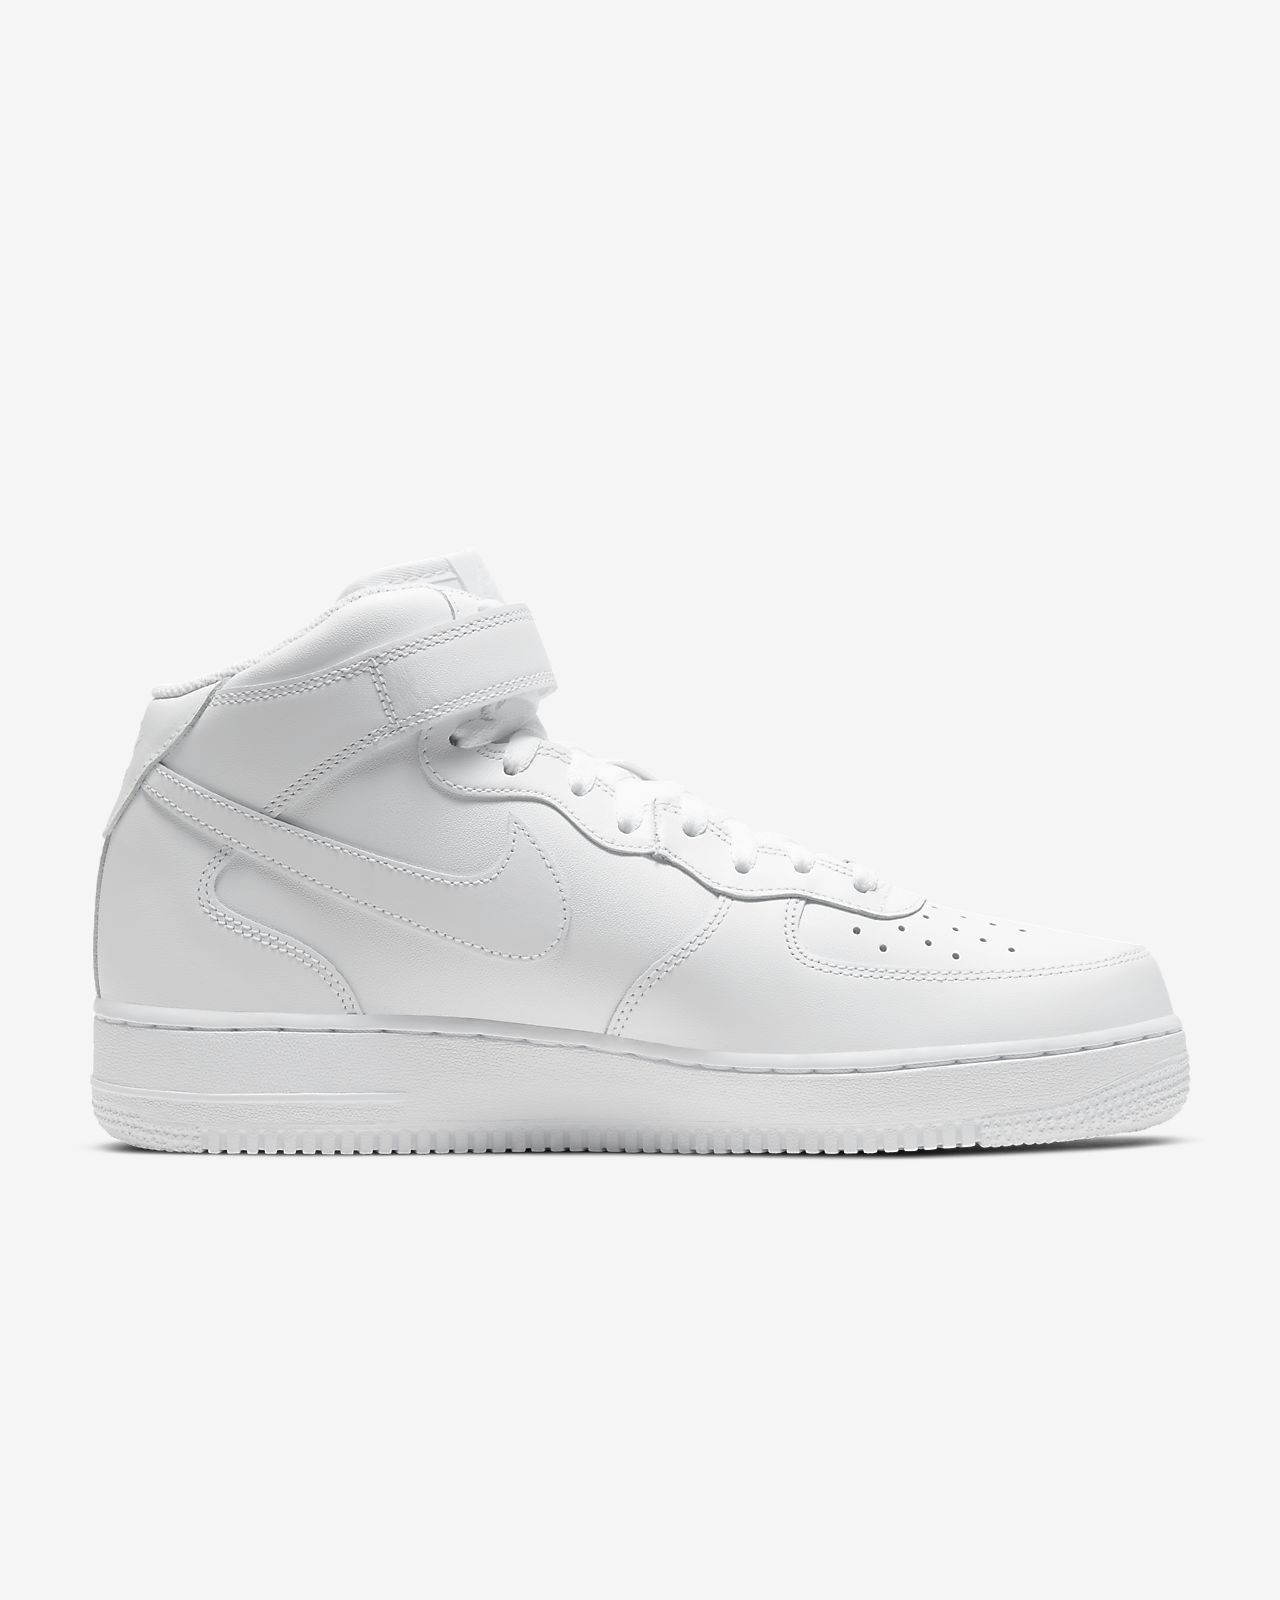 Nike Air Force 1 Mid '07 herresko